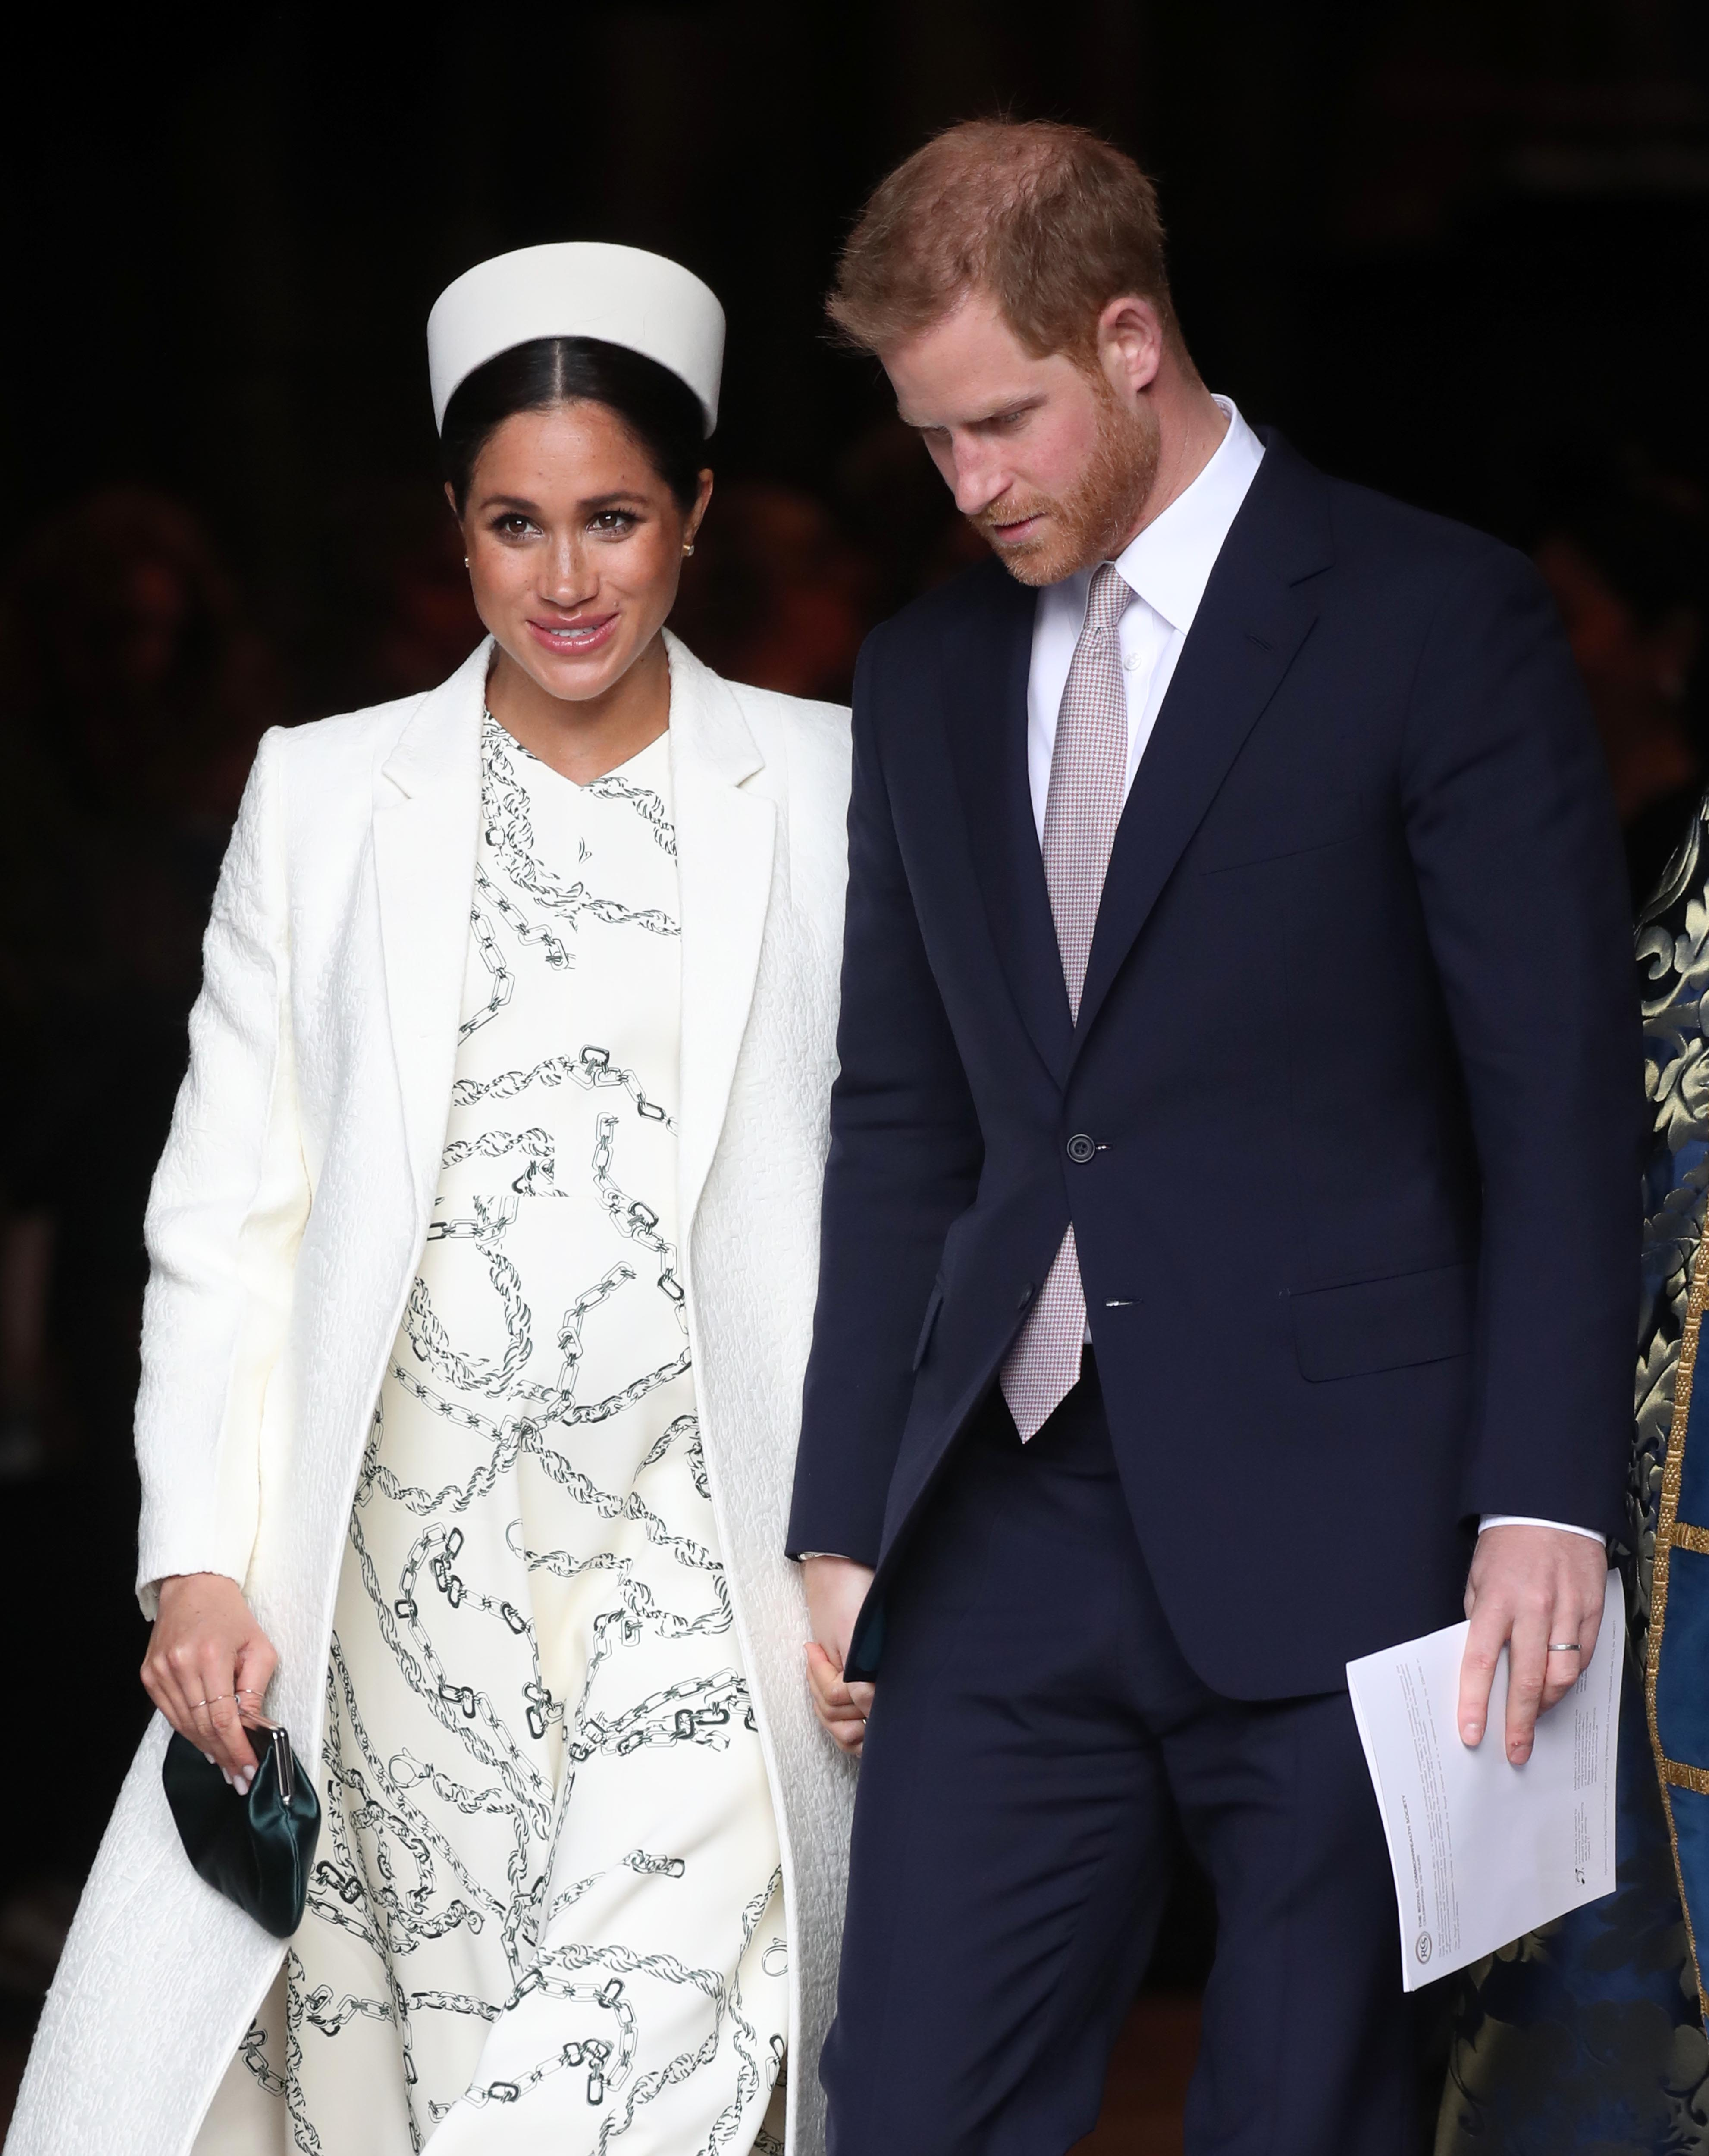 Image Credits: Getty Images | Prince Harry and Meghan Markle are photographed on a royal trip.